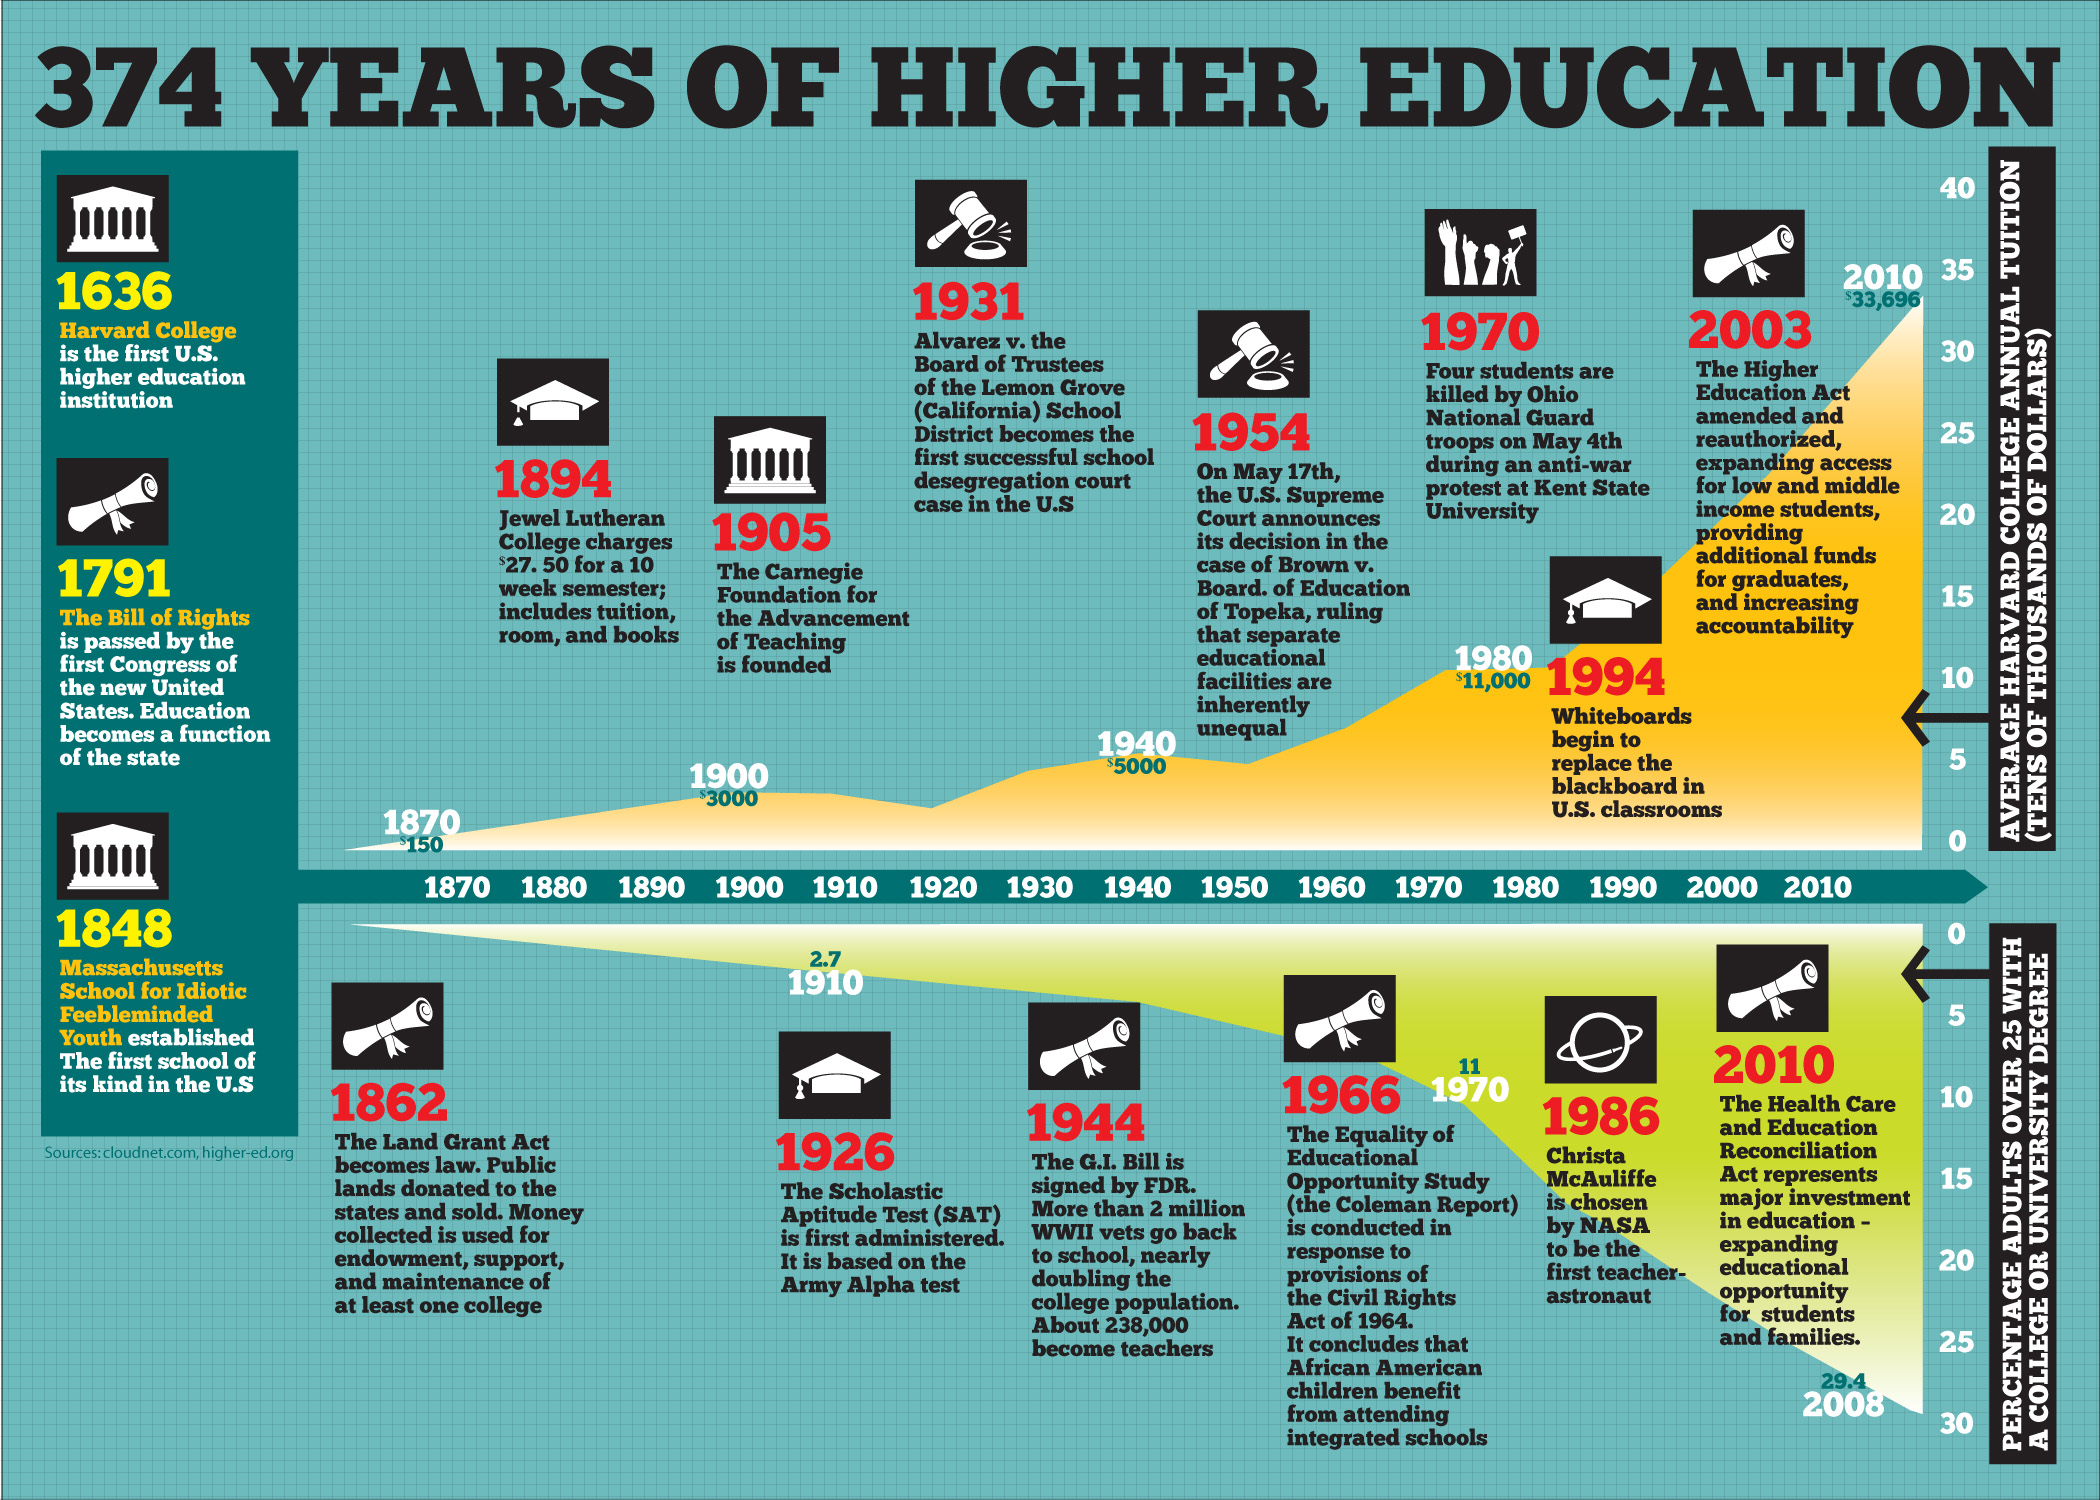 integration of technology in higher education What's standing between old habits and new technologies, and how can students and teachers begin to revolutionize education using new tools.